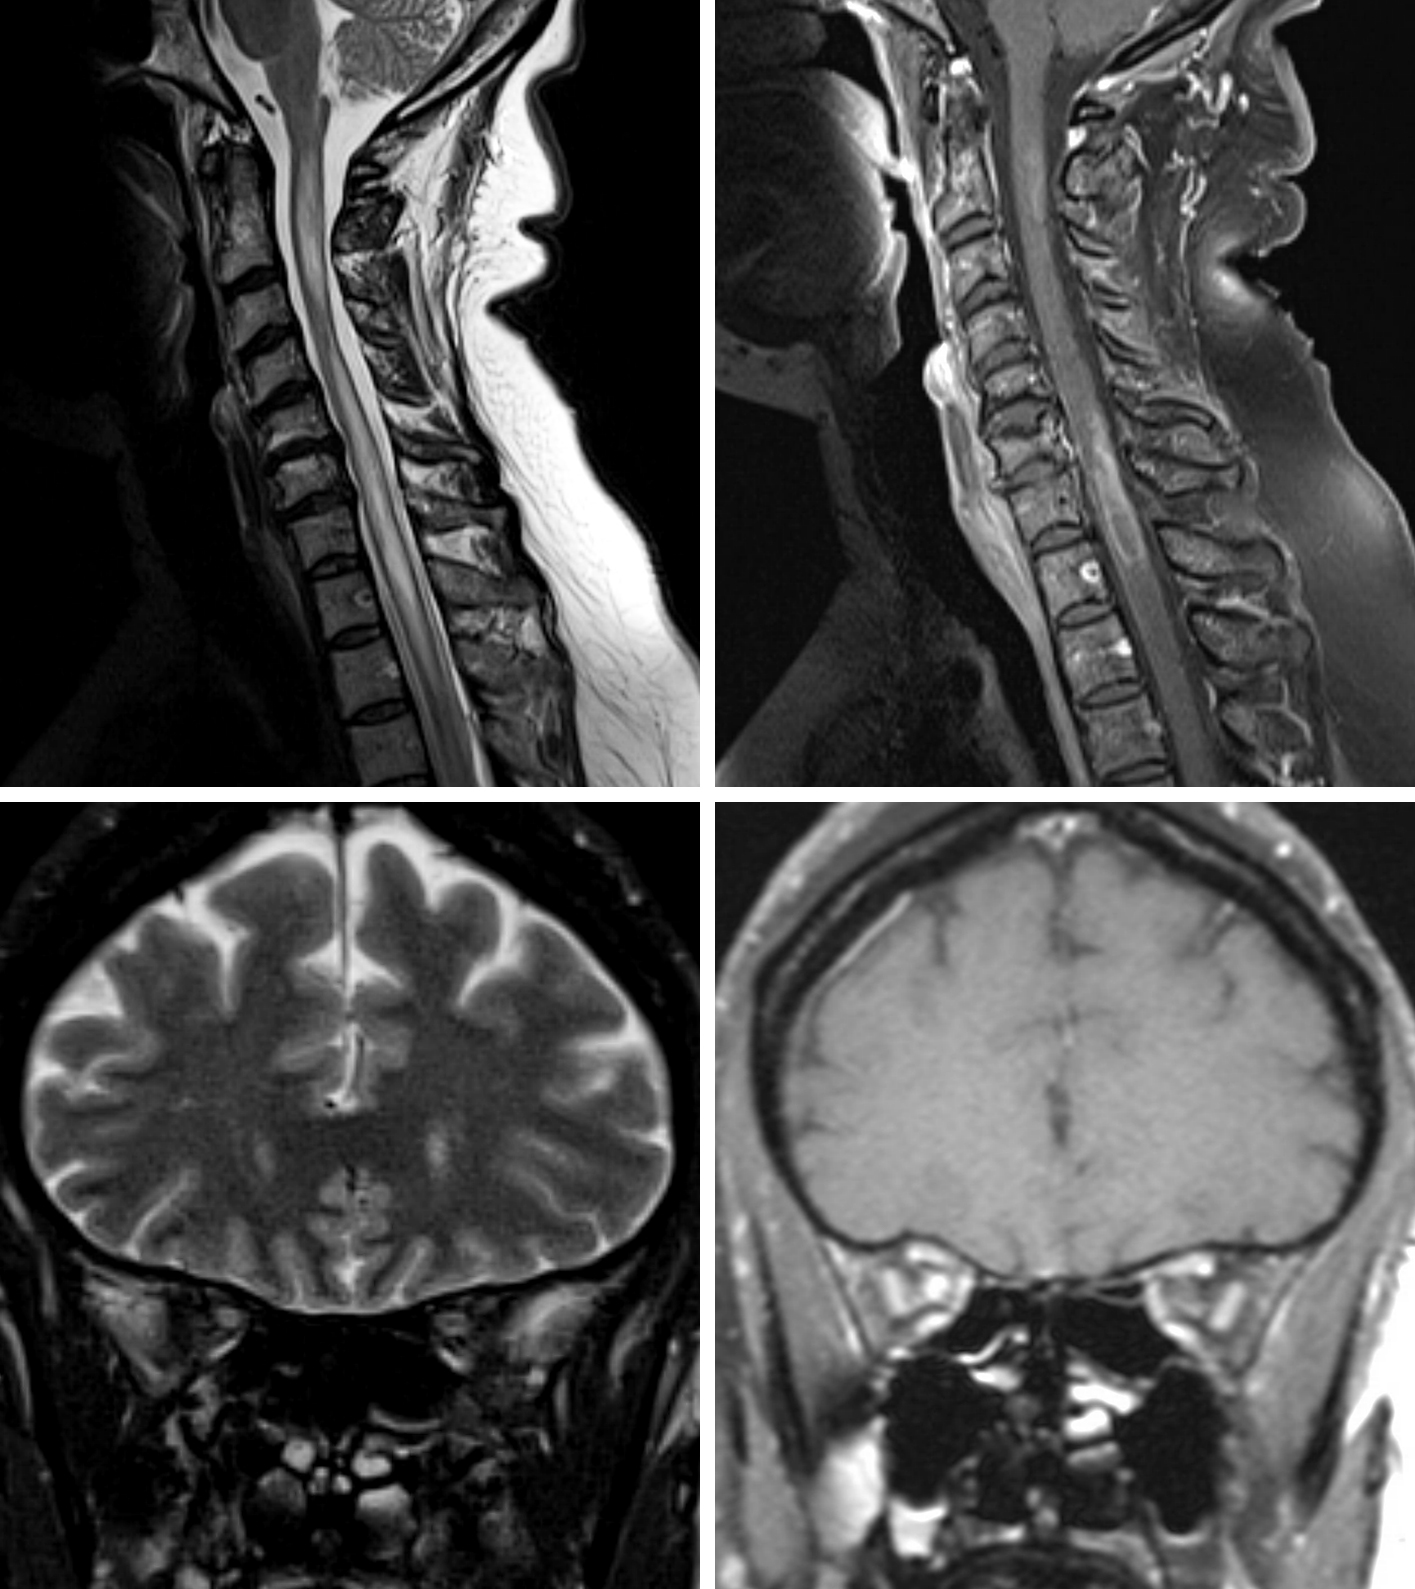 Figure 1: Sagittal T2 (top row left) and sagittal T1 post-contrast fat-saturated (FS) (top row right) images of the cervical spine demonstrate longitudinally extensive (long segment > 2 vertebral bodies in length) T2 hyperintense lesions in the spinal cord with ill-defined enhancement. Coronal T2-FS (bottom row left) and coronal T1 post-contrast FS (top row right) images of the orbits demonstrate an enhancing T2 hyperintense right optic nerve. The longitudinally extensive lesions in the cervical spinal cord, clinical and imaging findings of optic neuritis, and serology positivity for AQP-4 antibodies (NMO-IgG) are consistent with Neuromyelitis Optica.